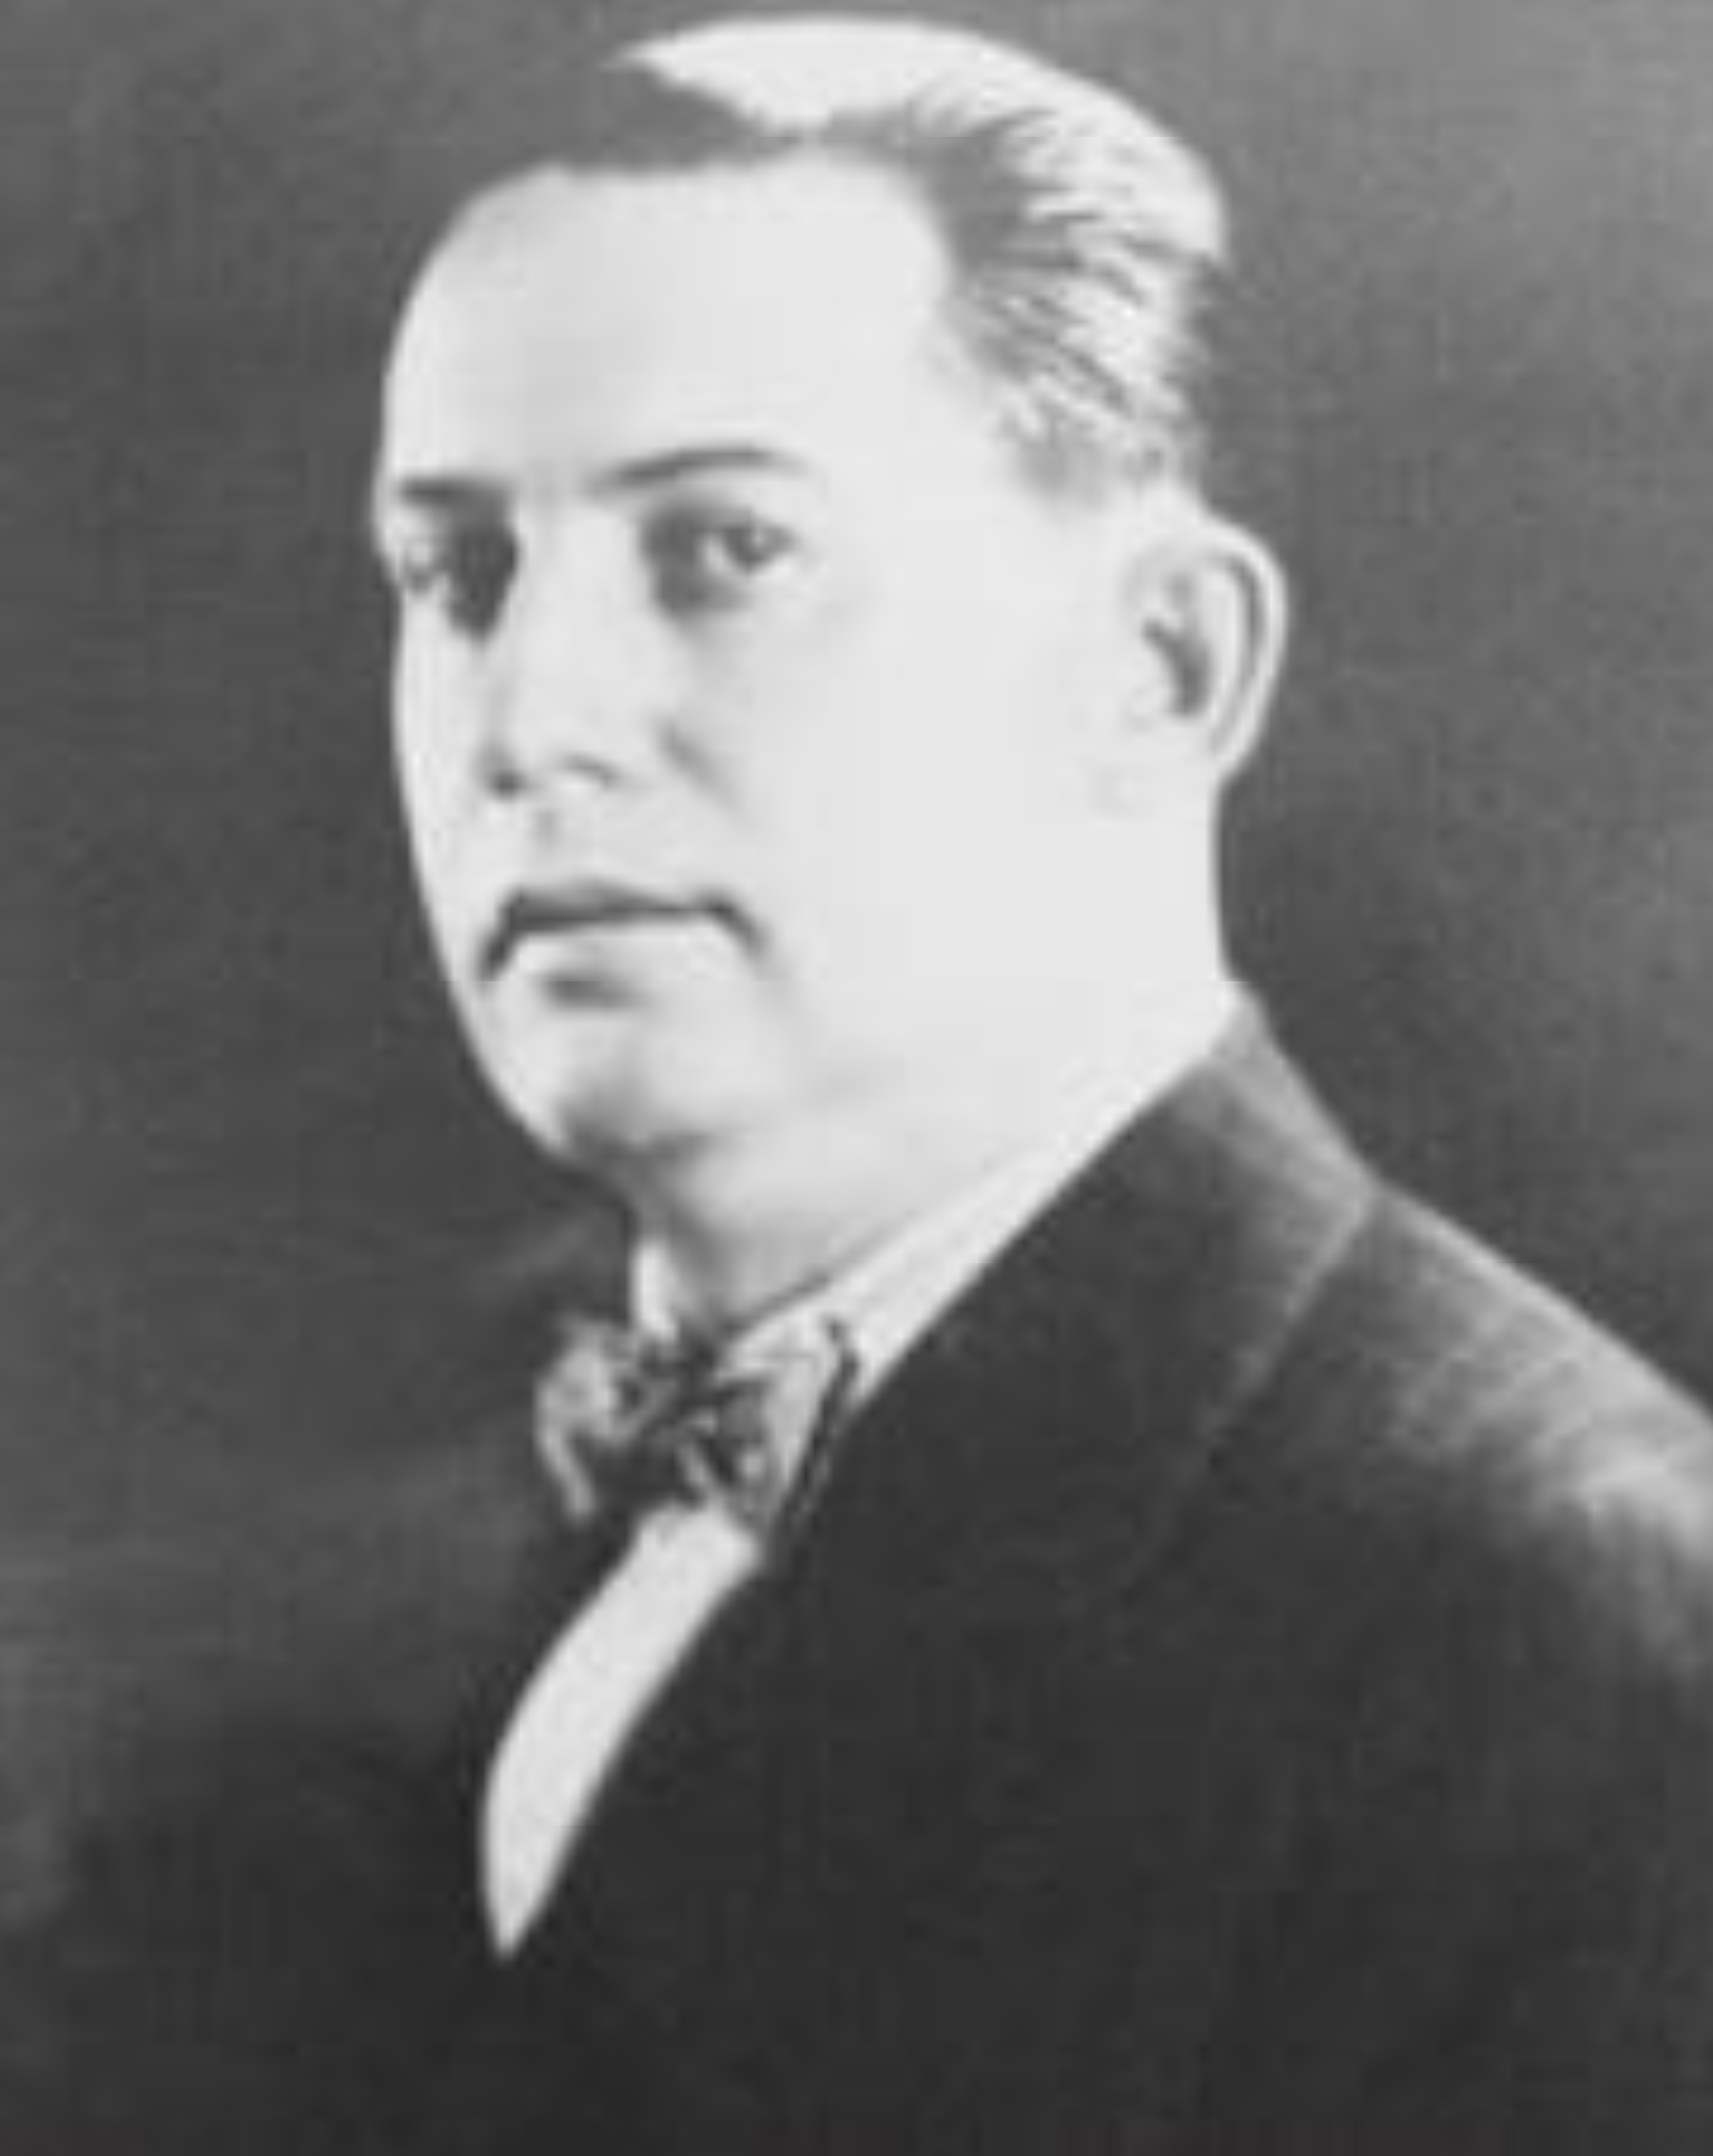 O. J. CONNELL